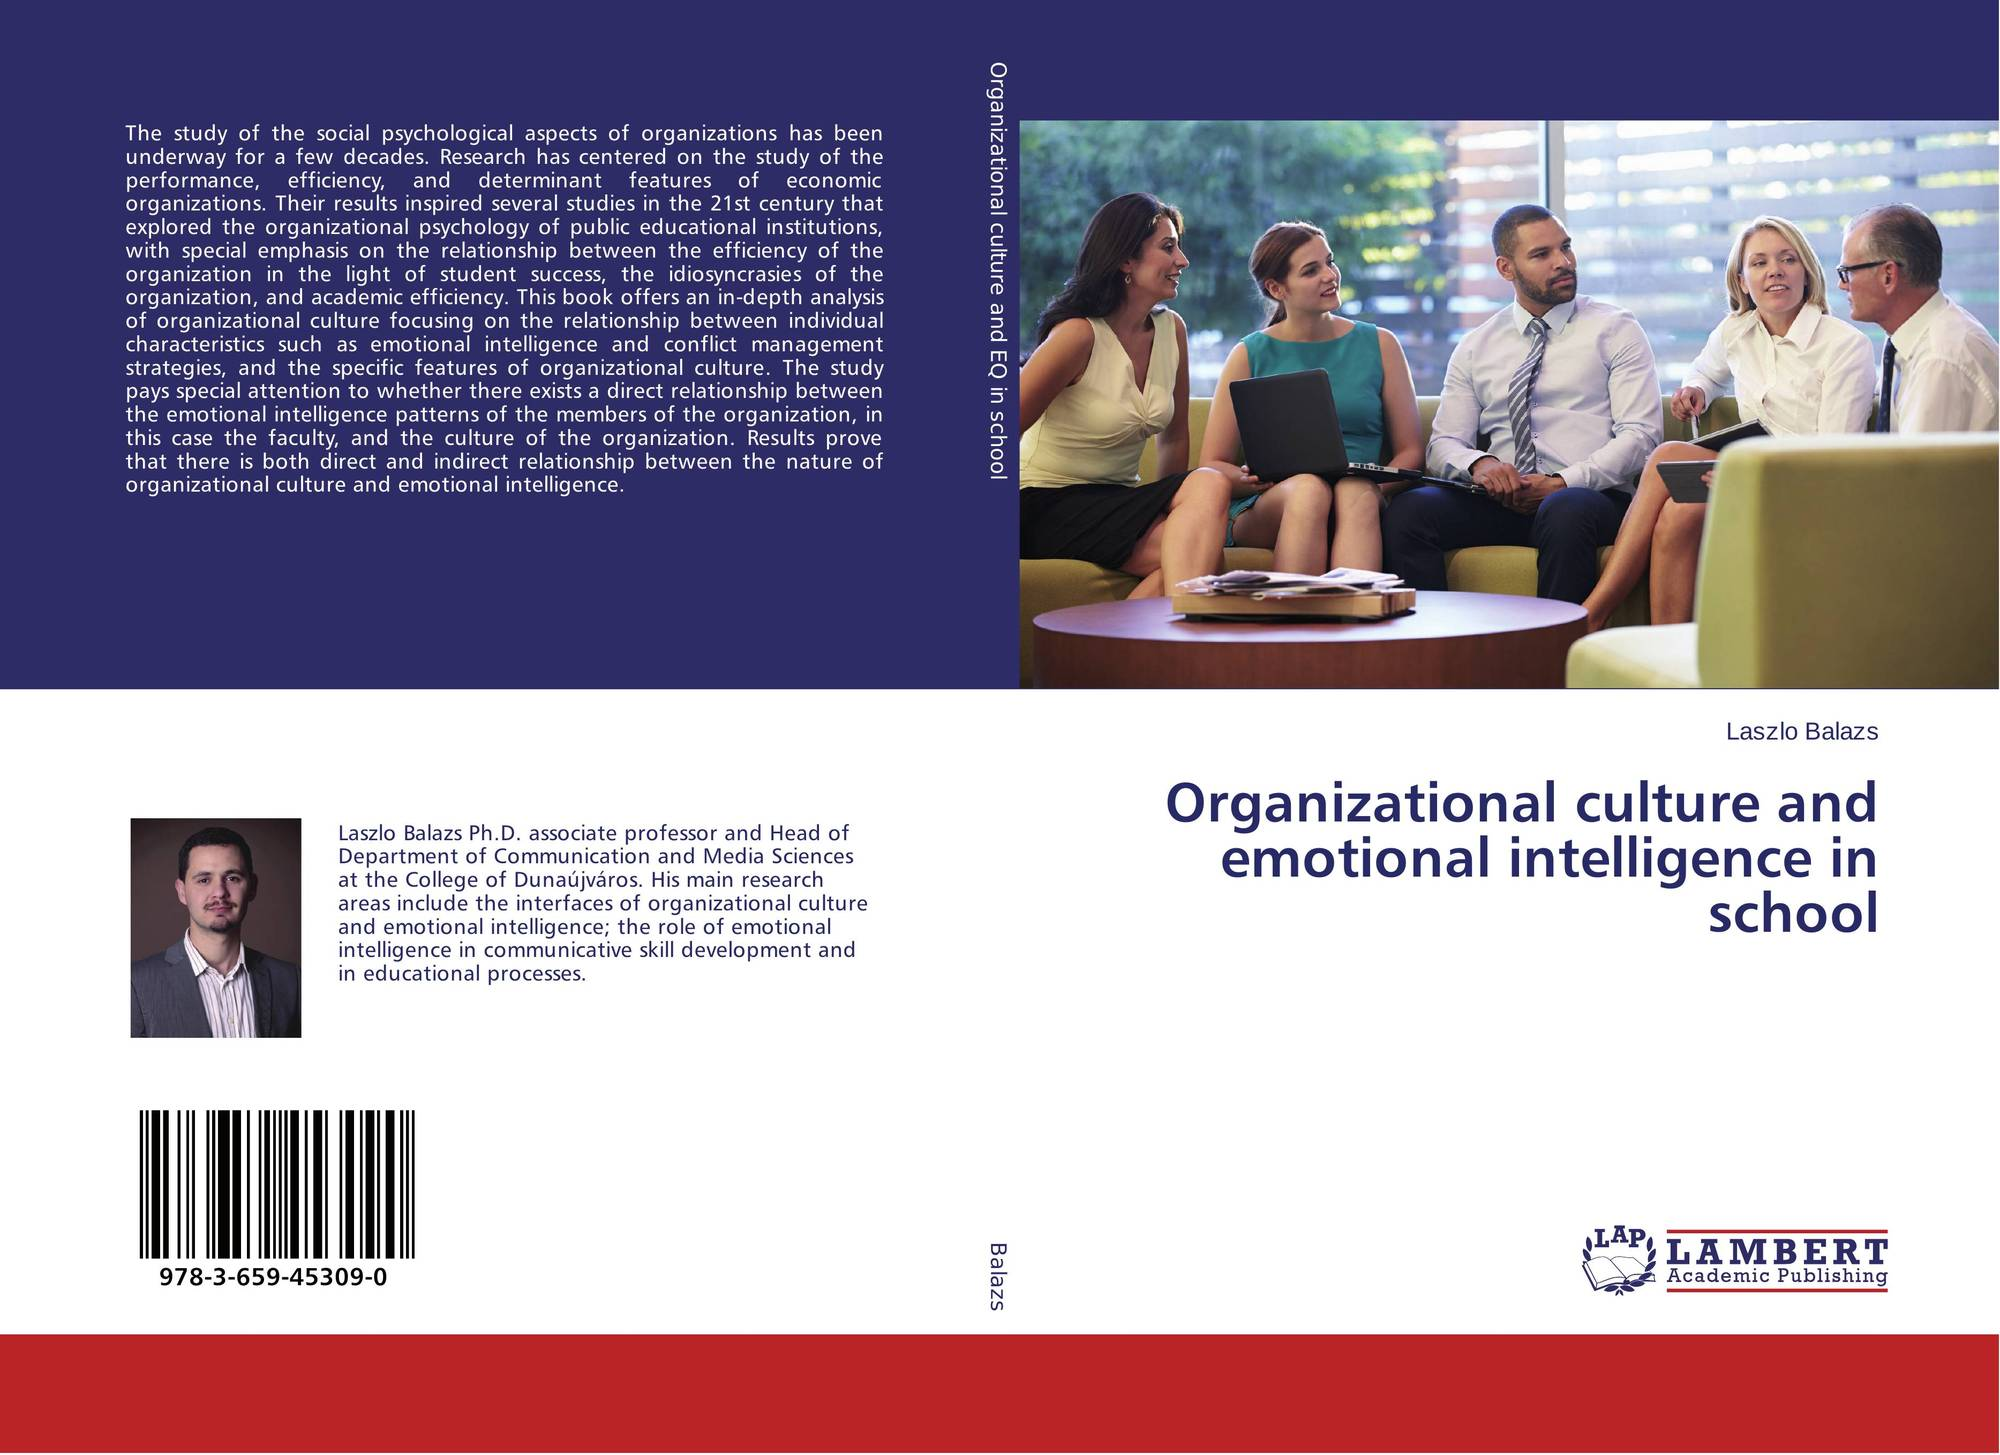 the role of organizational culture on